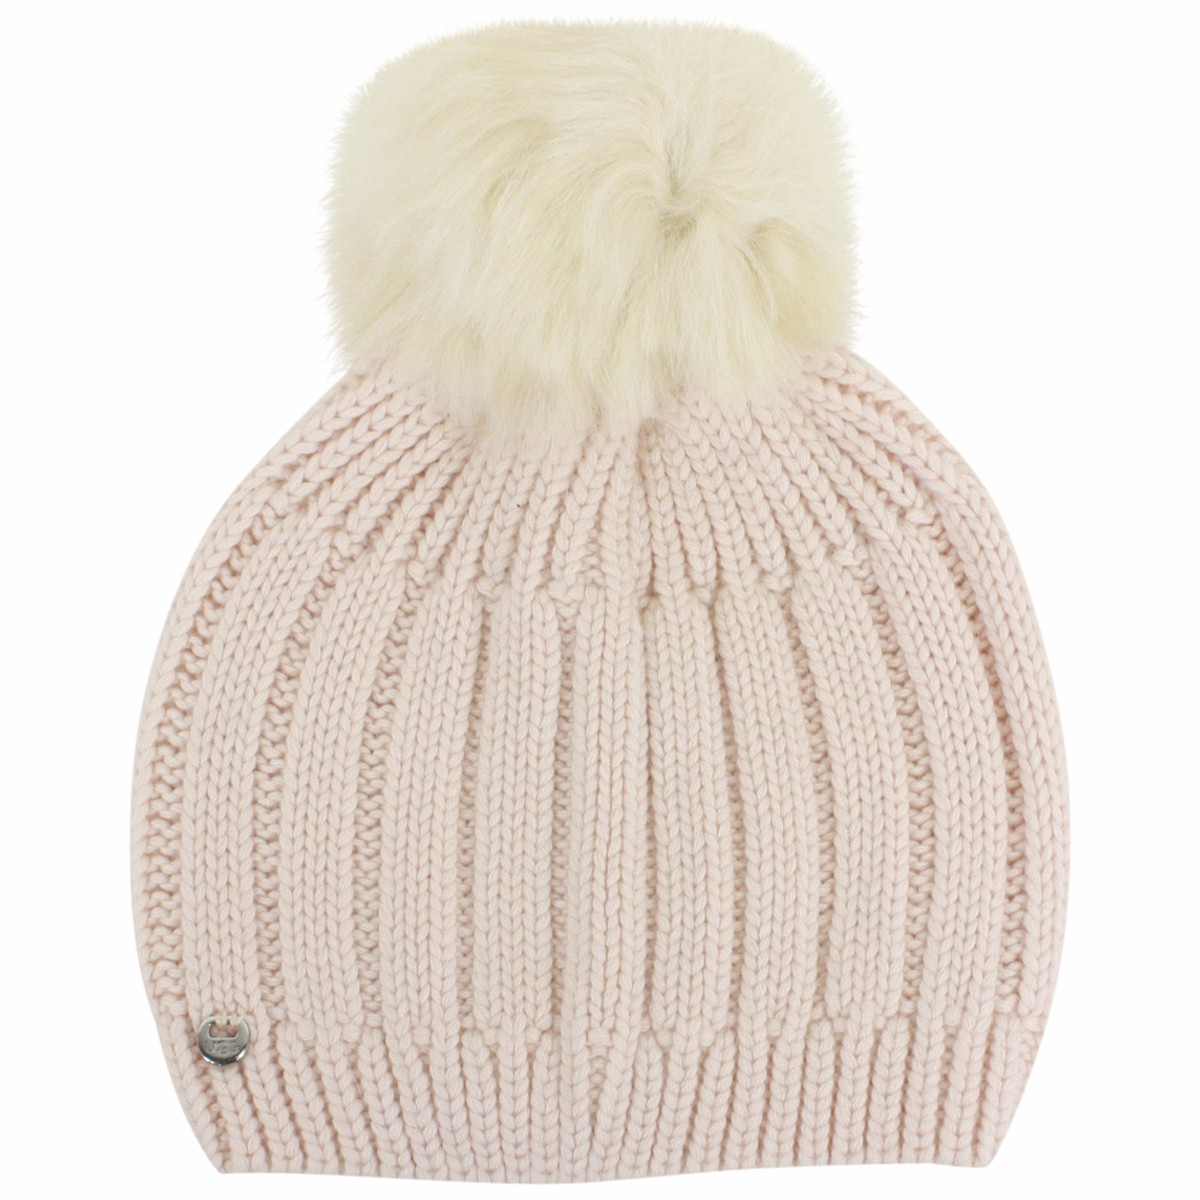 54aa790158118 Ugg Women s Solid Ribbed Pearl Winter Beanie Hat With Pom (One Size ...